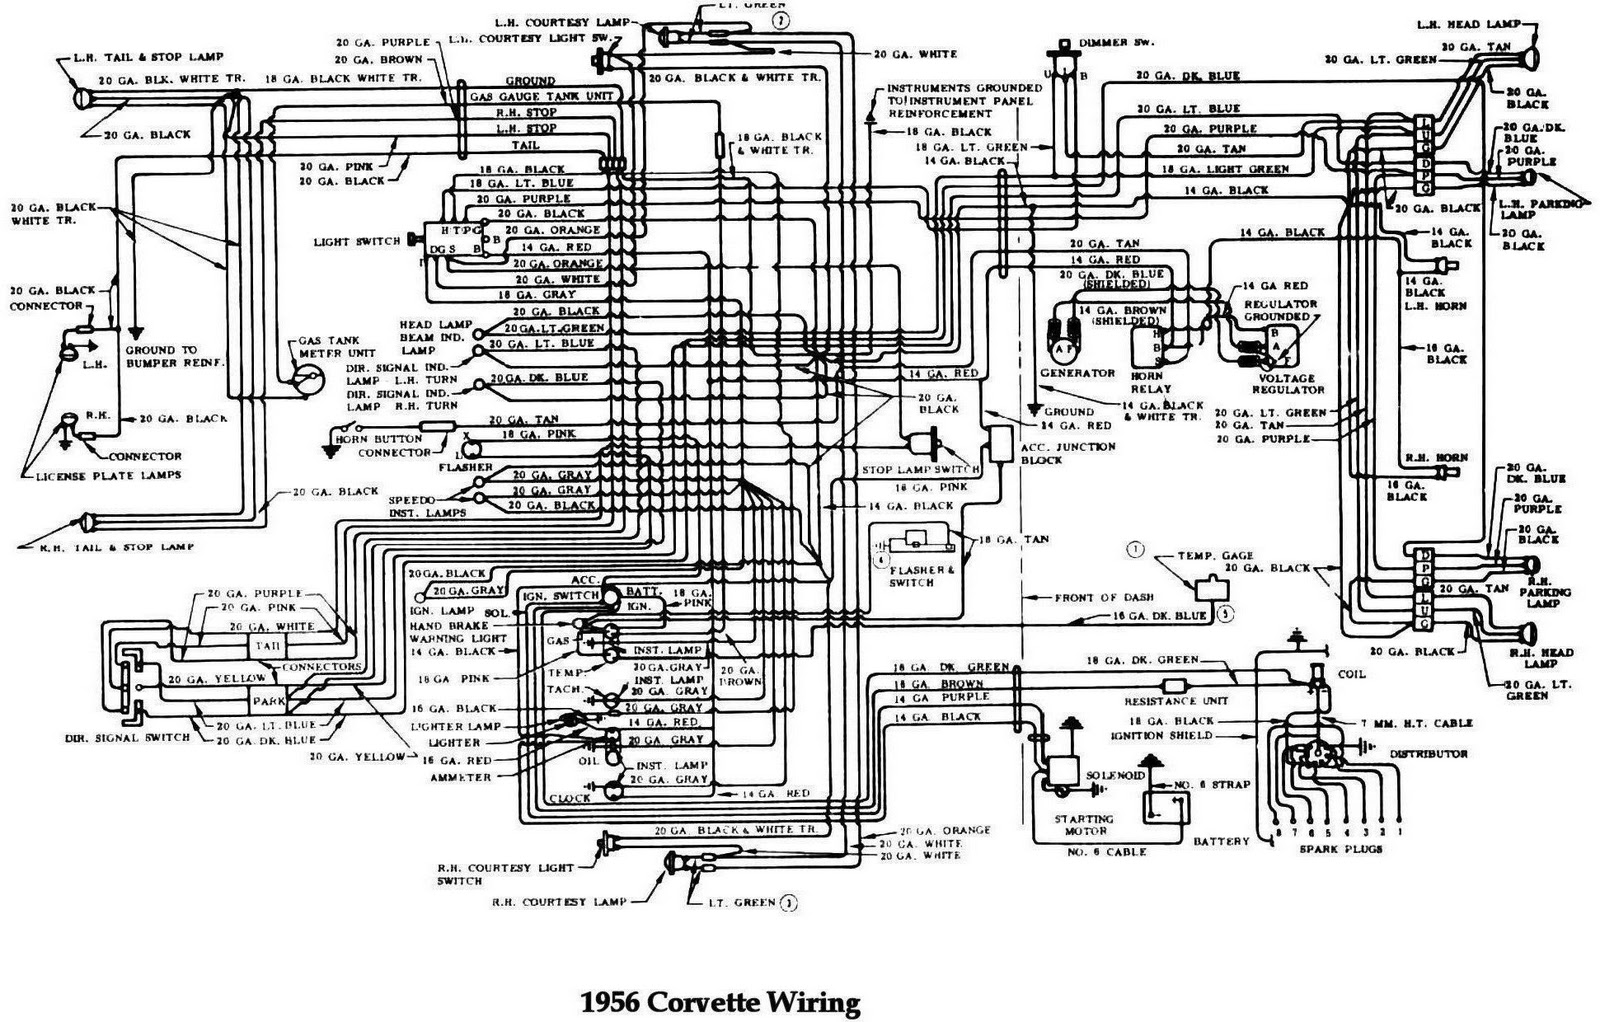 Diagram 1958 Corvette Gauge Wiring Diagram Full Version Hd Quality Wiring Diagram Tinydiagrams Gevim Fr